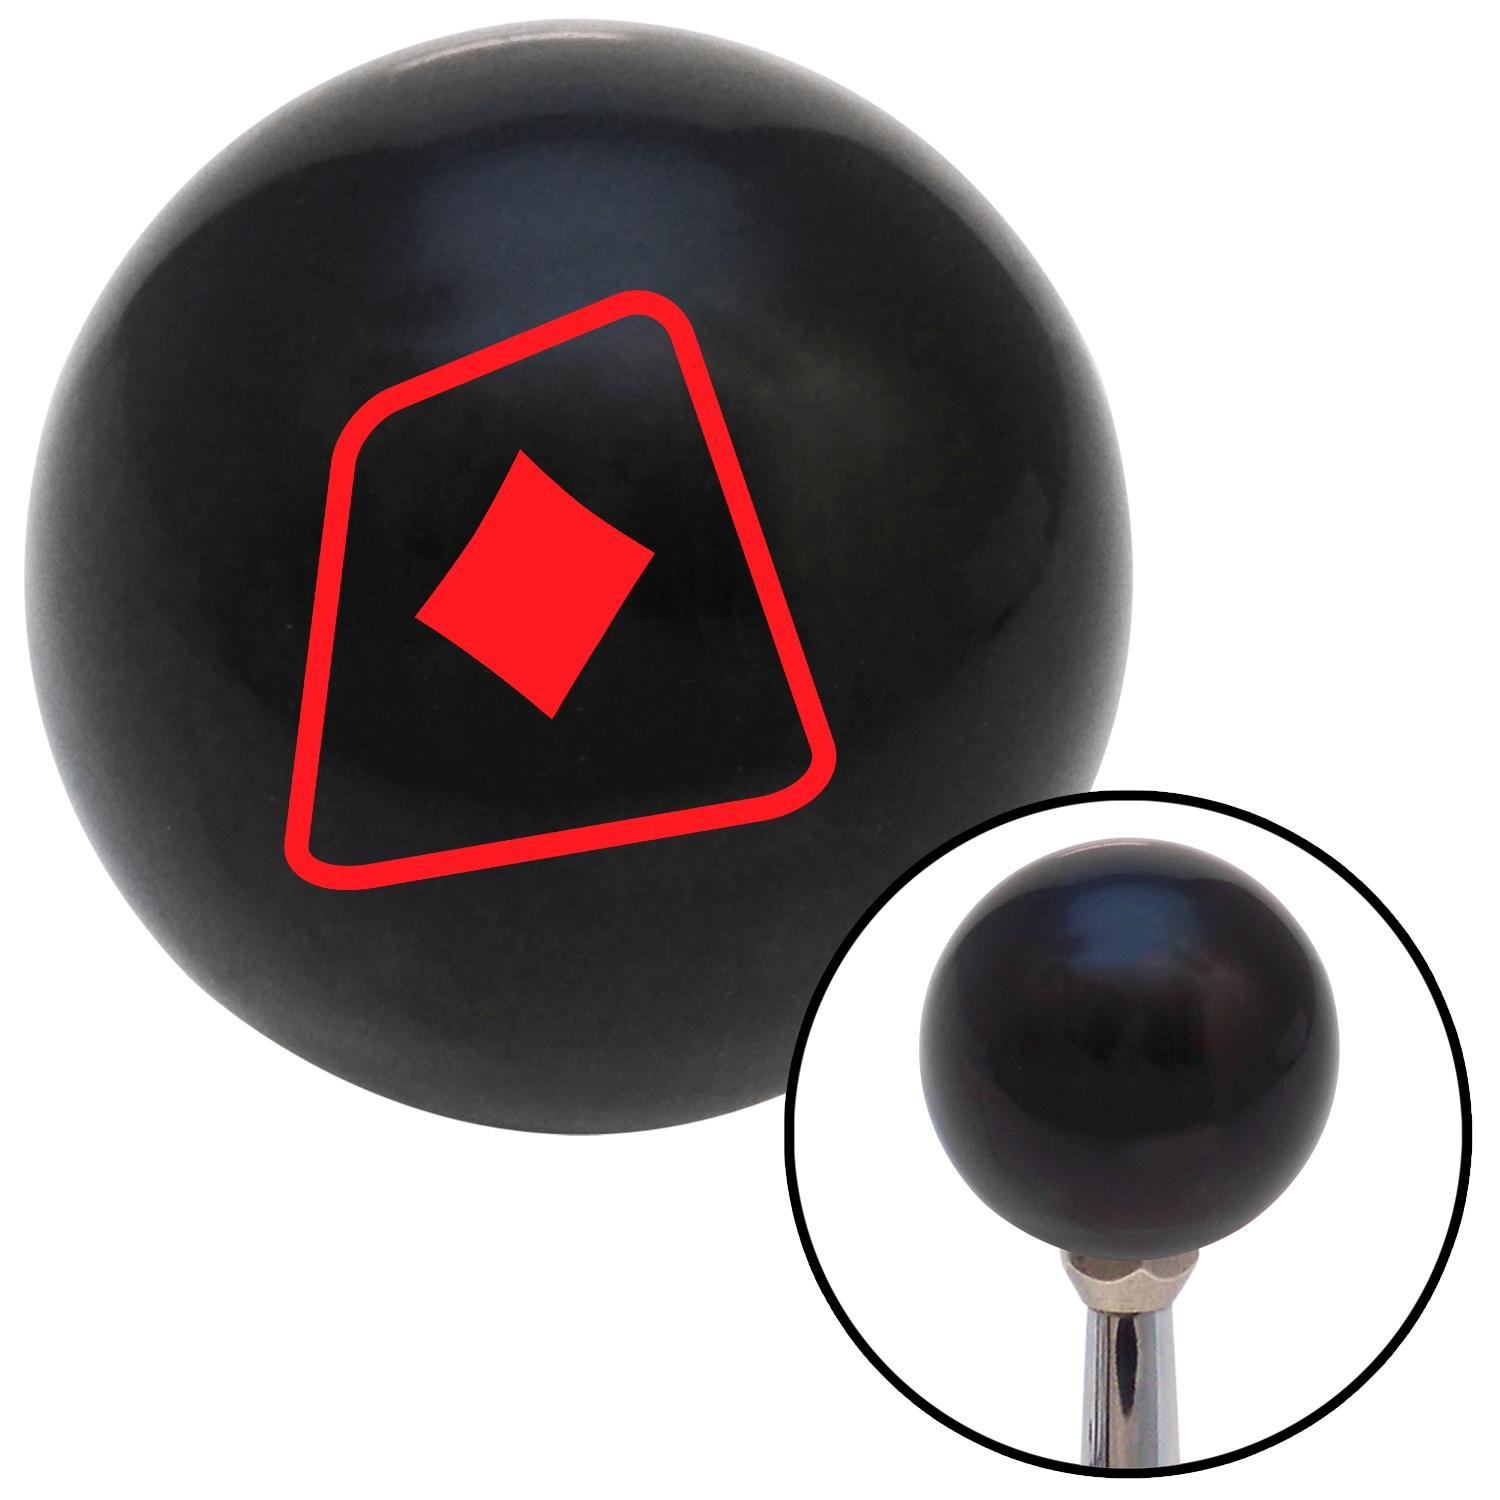 American Shifter 104212 Black Shift Knob with M16 x 1.5 Insert Red Diamonds on a Card